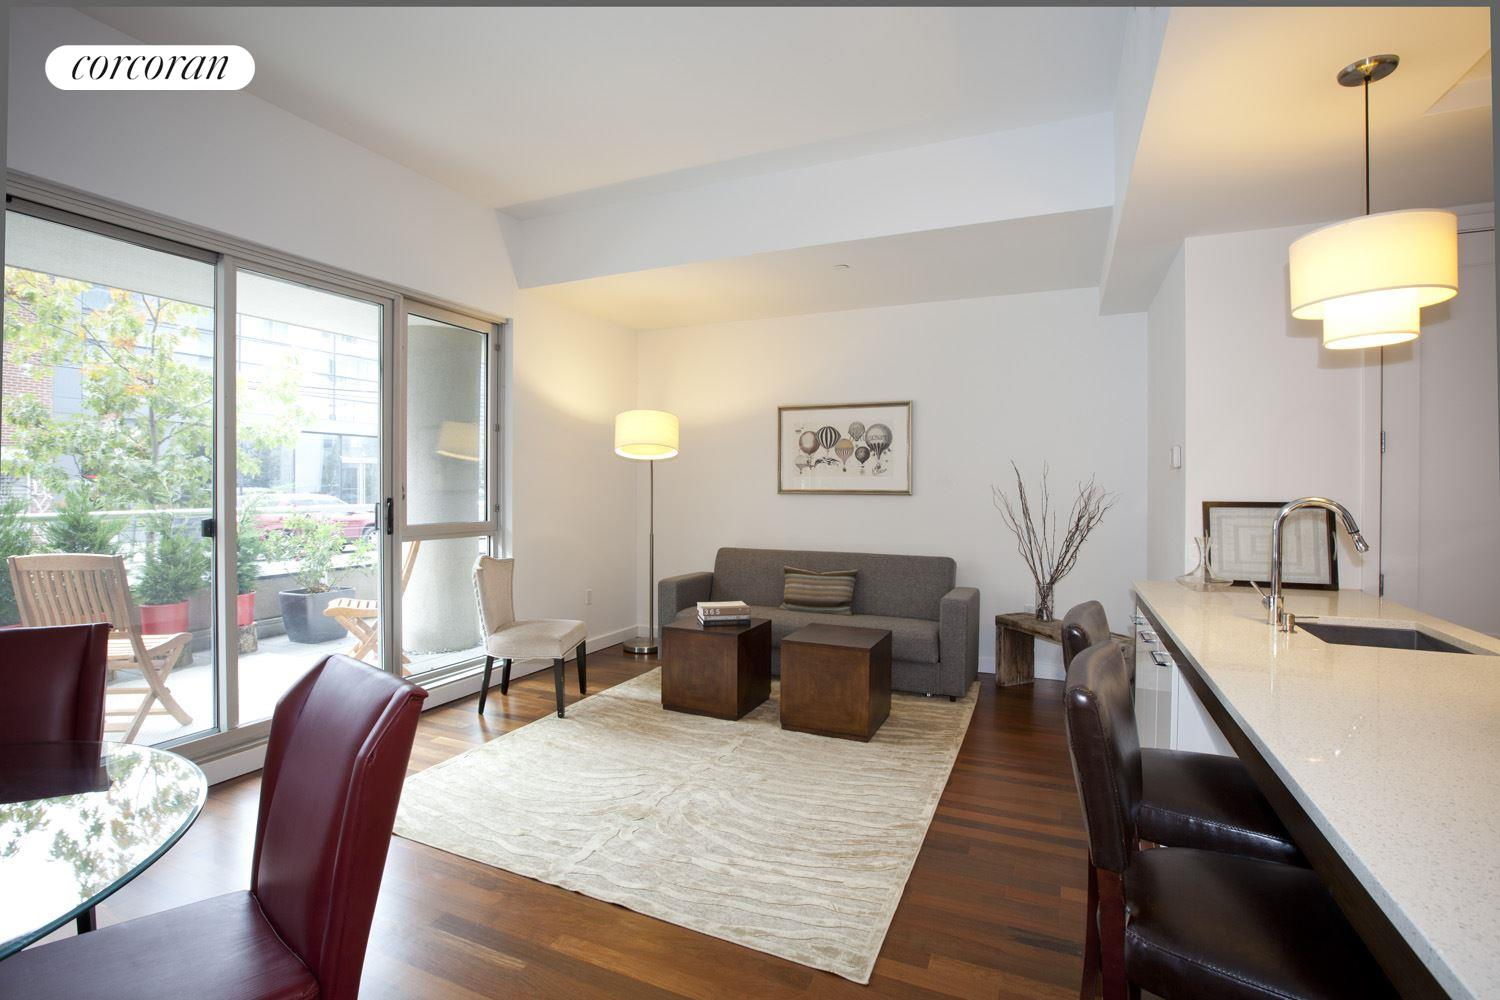 125 North 10th Street, SGE, Large Living Room with Dining Area